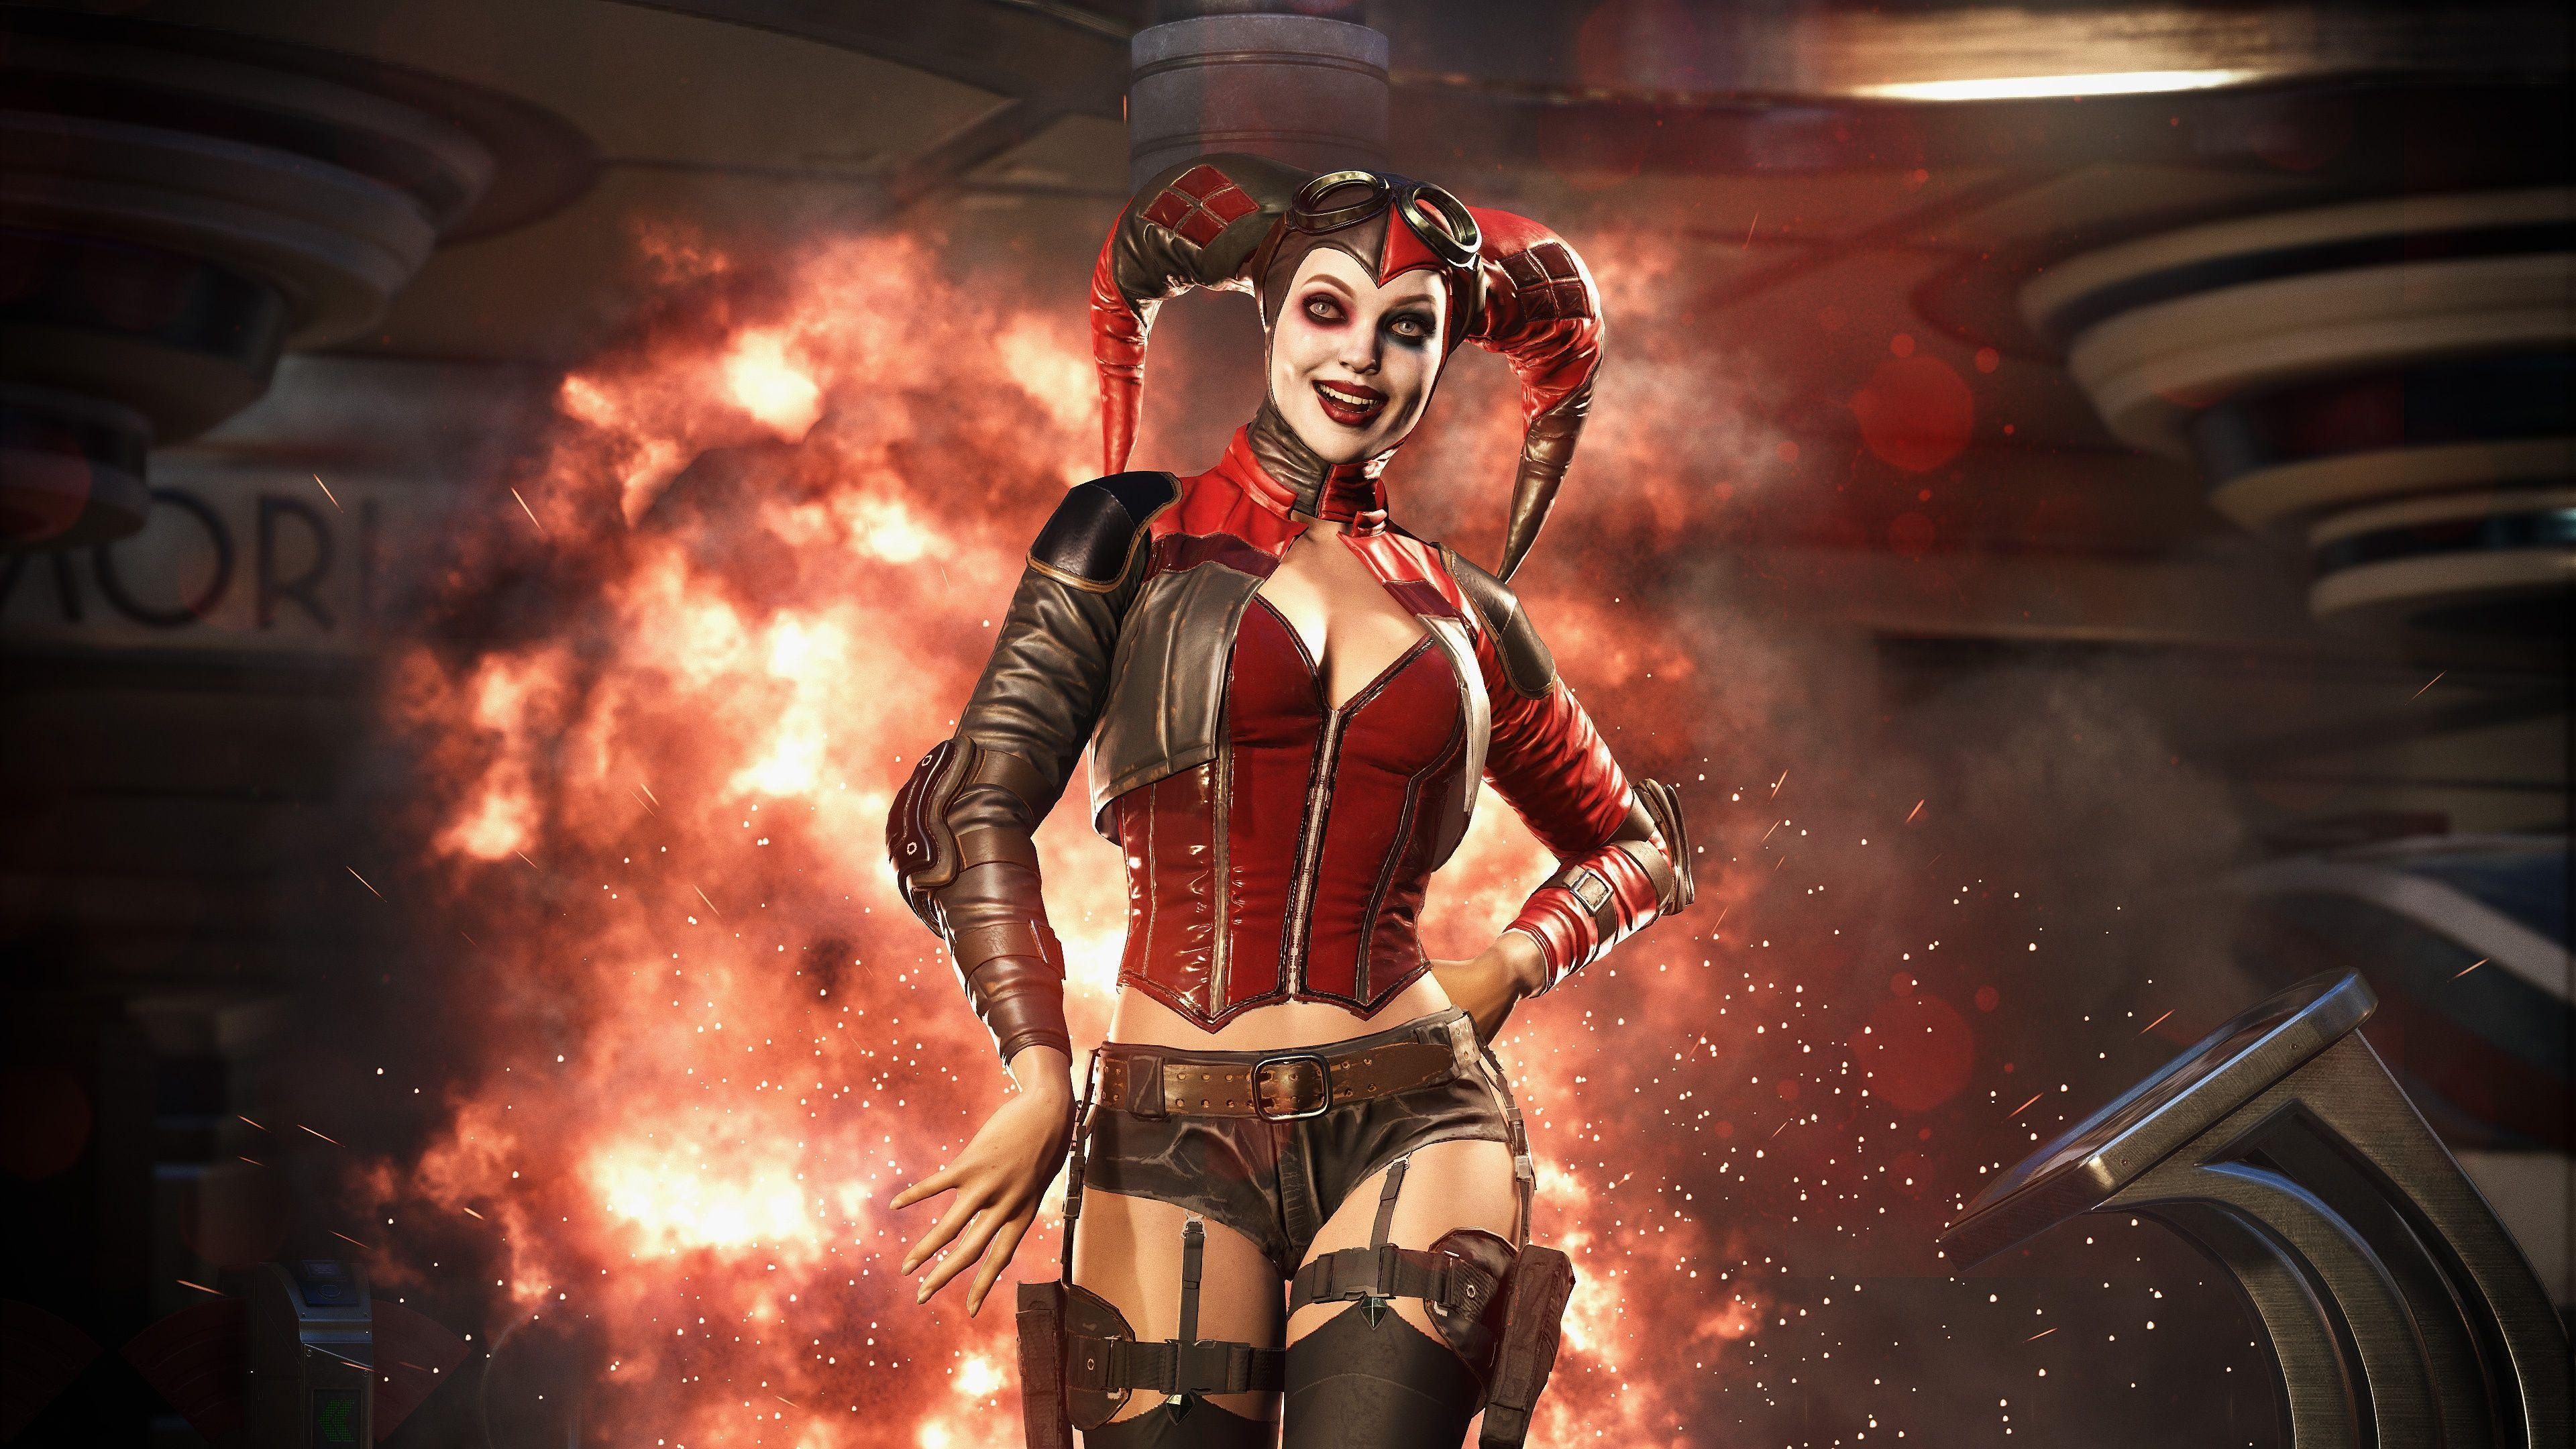 Harley Quinn Supervillain Wallpapers Wallpaper Cave